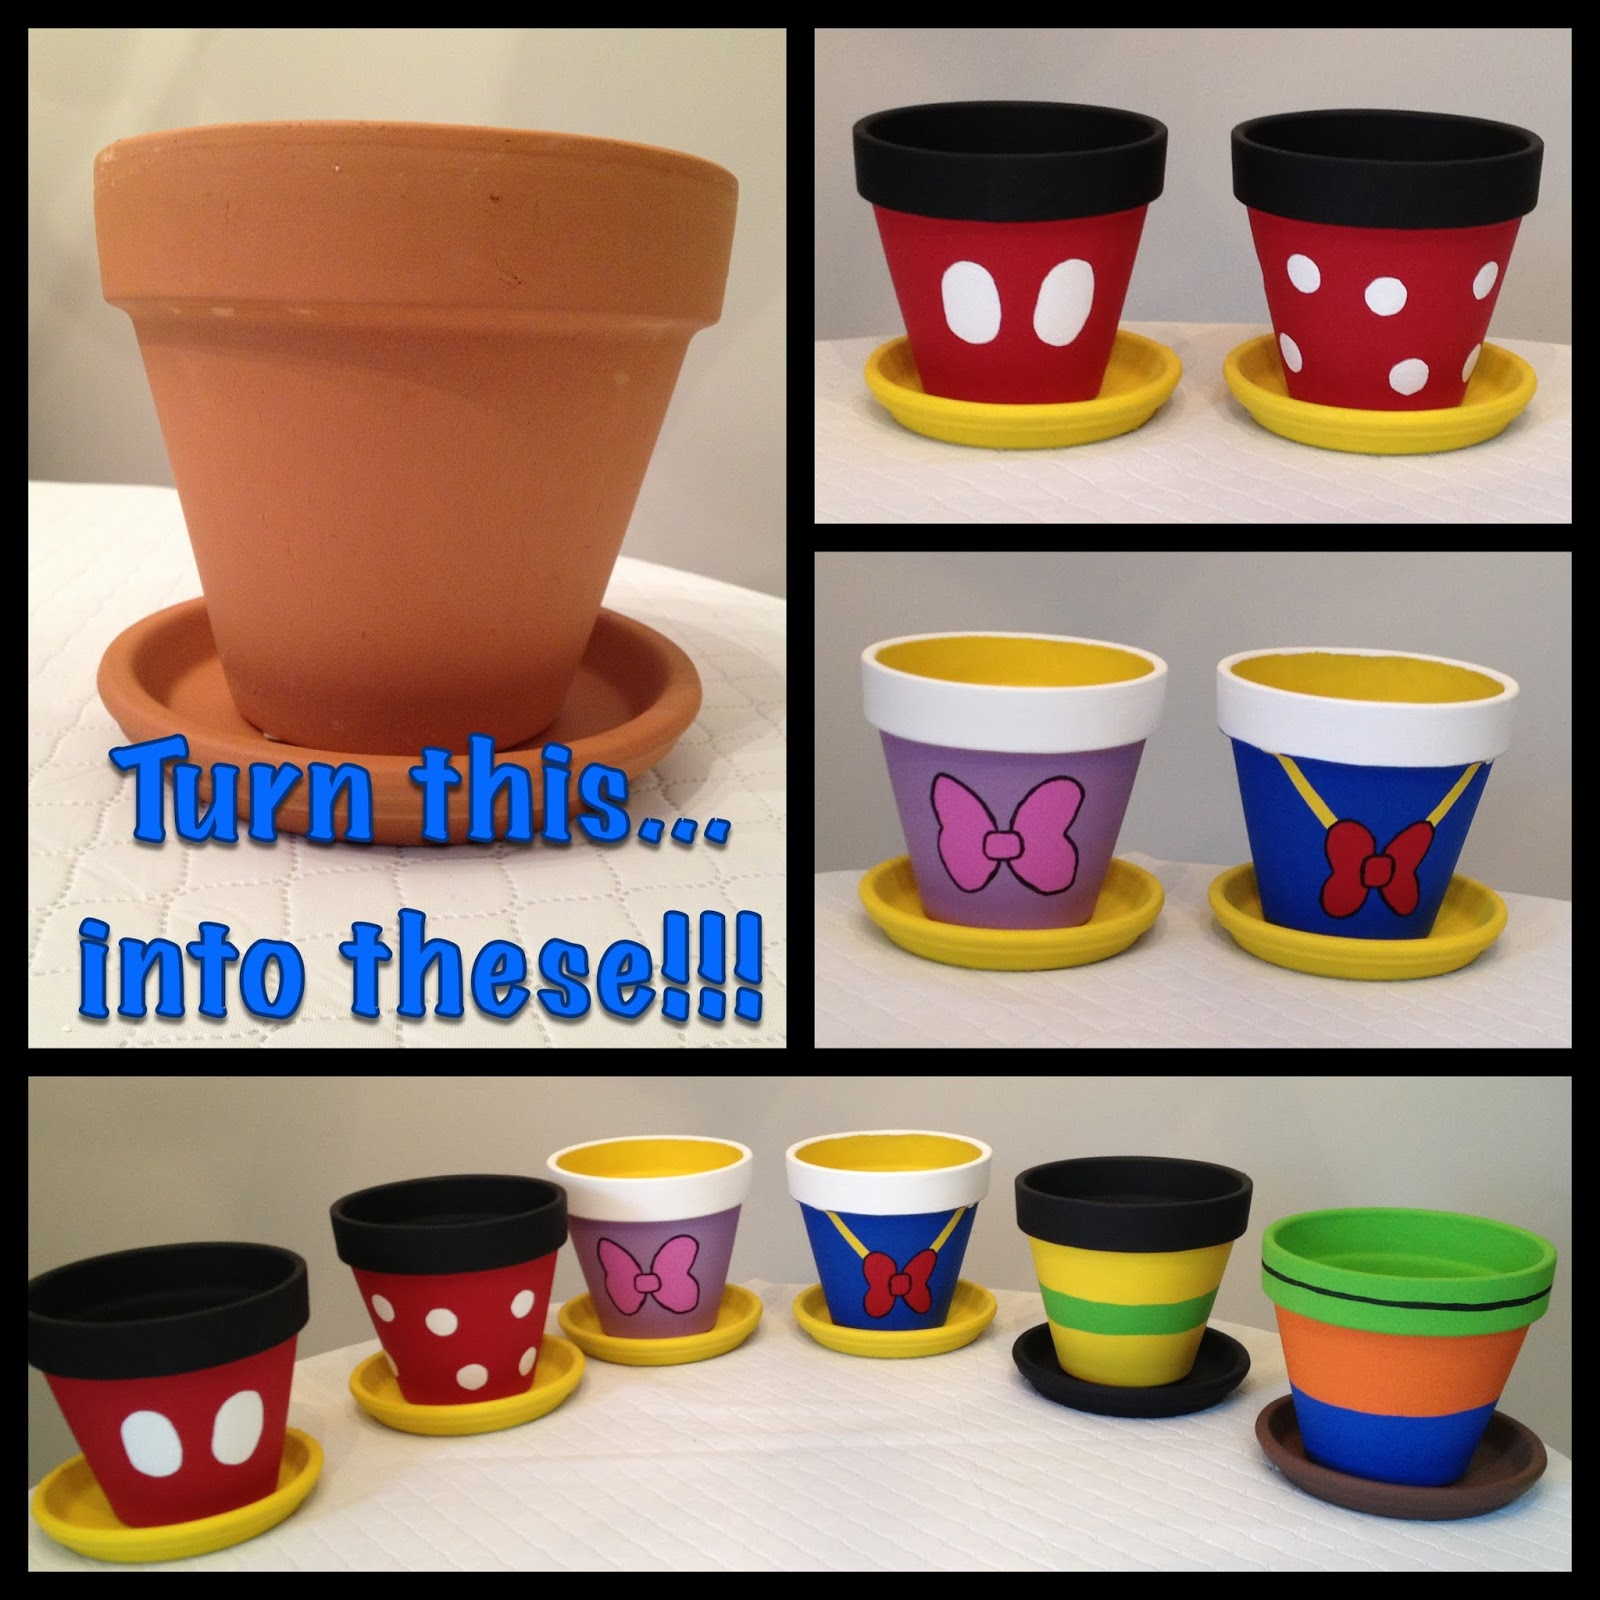 My disney life diy project painted flowerpots for Pot painting materials required